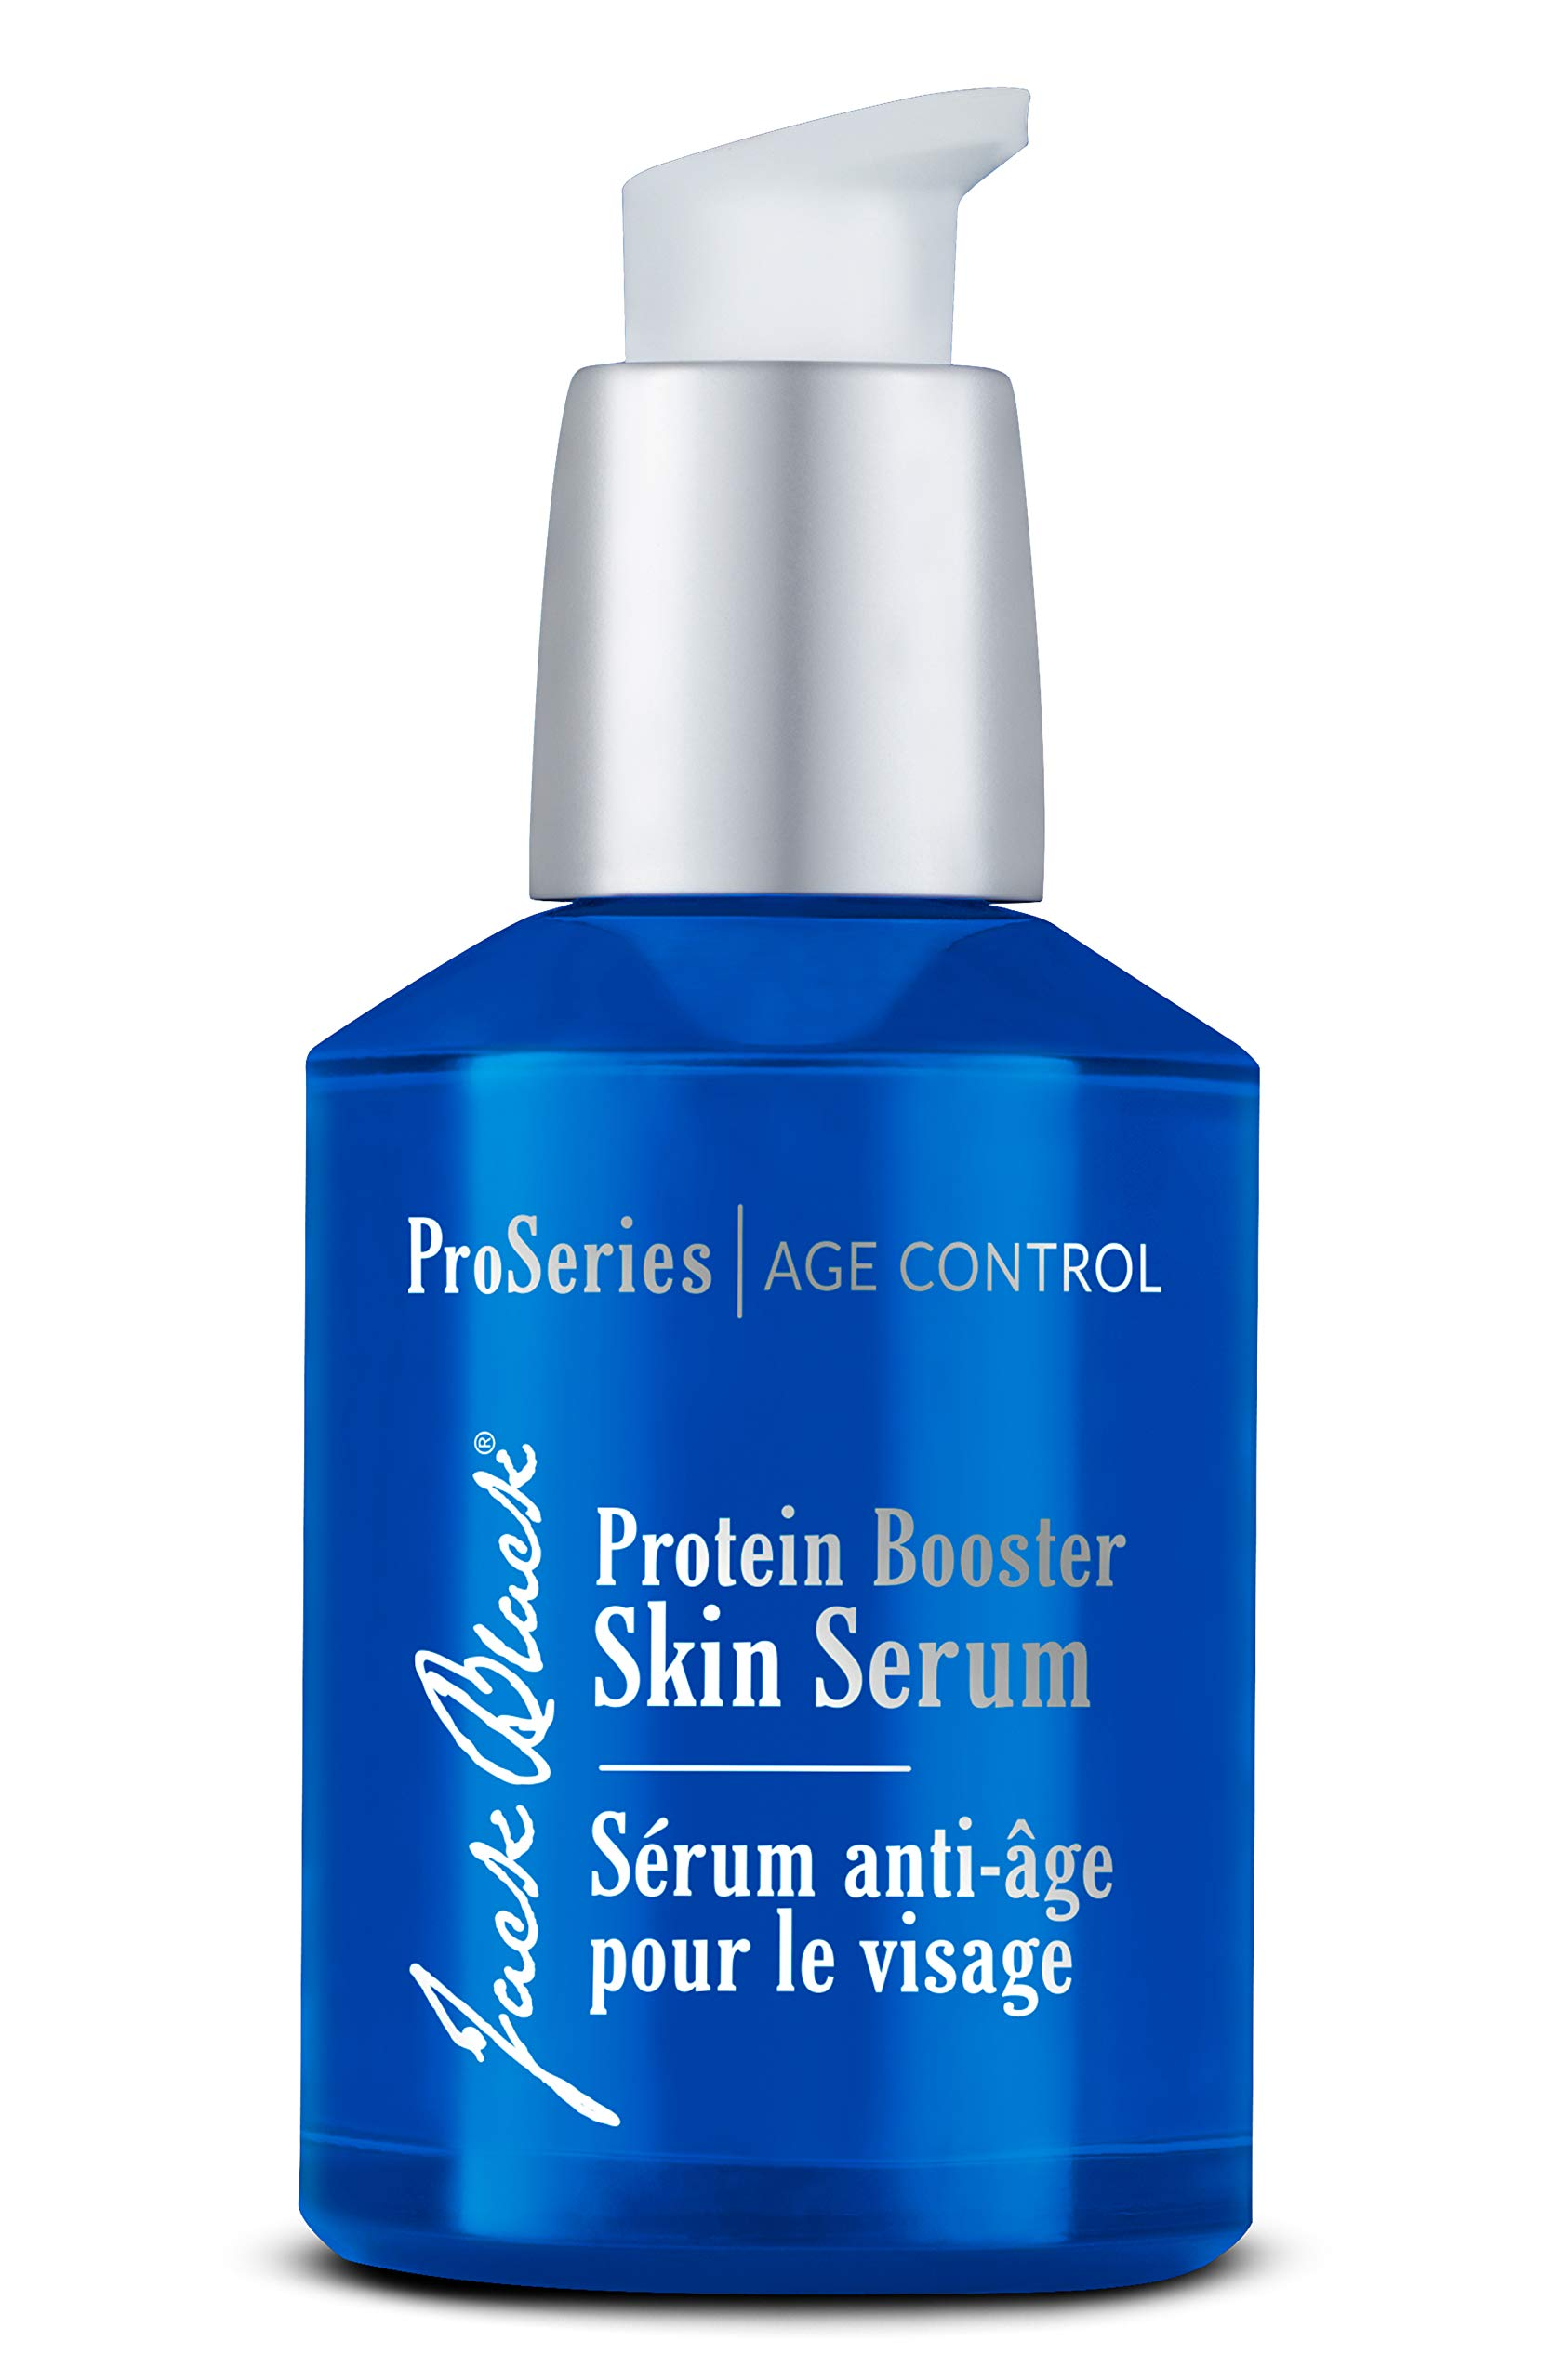 JACK BLACK - Protein Booster Skin Serum - ProSeries Men's Age Specialist Product, Peptides, Antioxidants and Organic Omega-3, Reduces Visible Signs of Aging, Improves Skin Tone, 2 oz by Jack Black